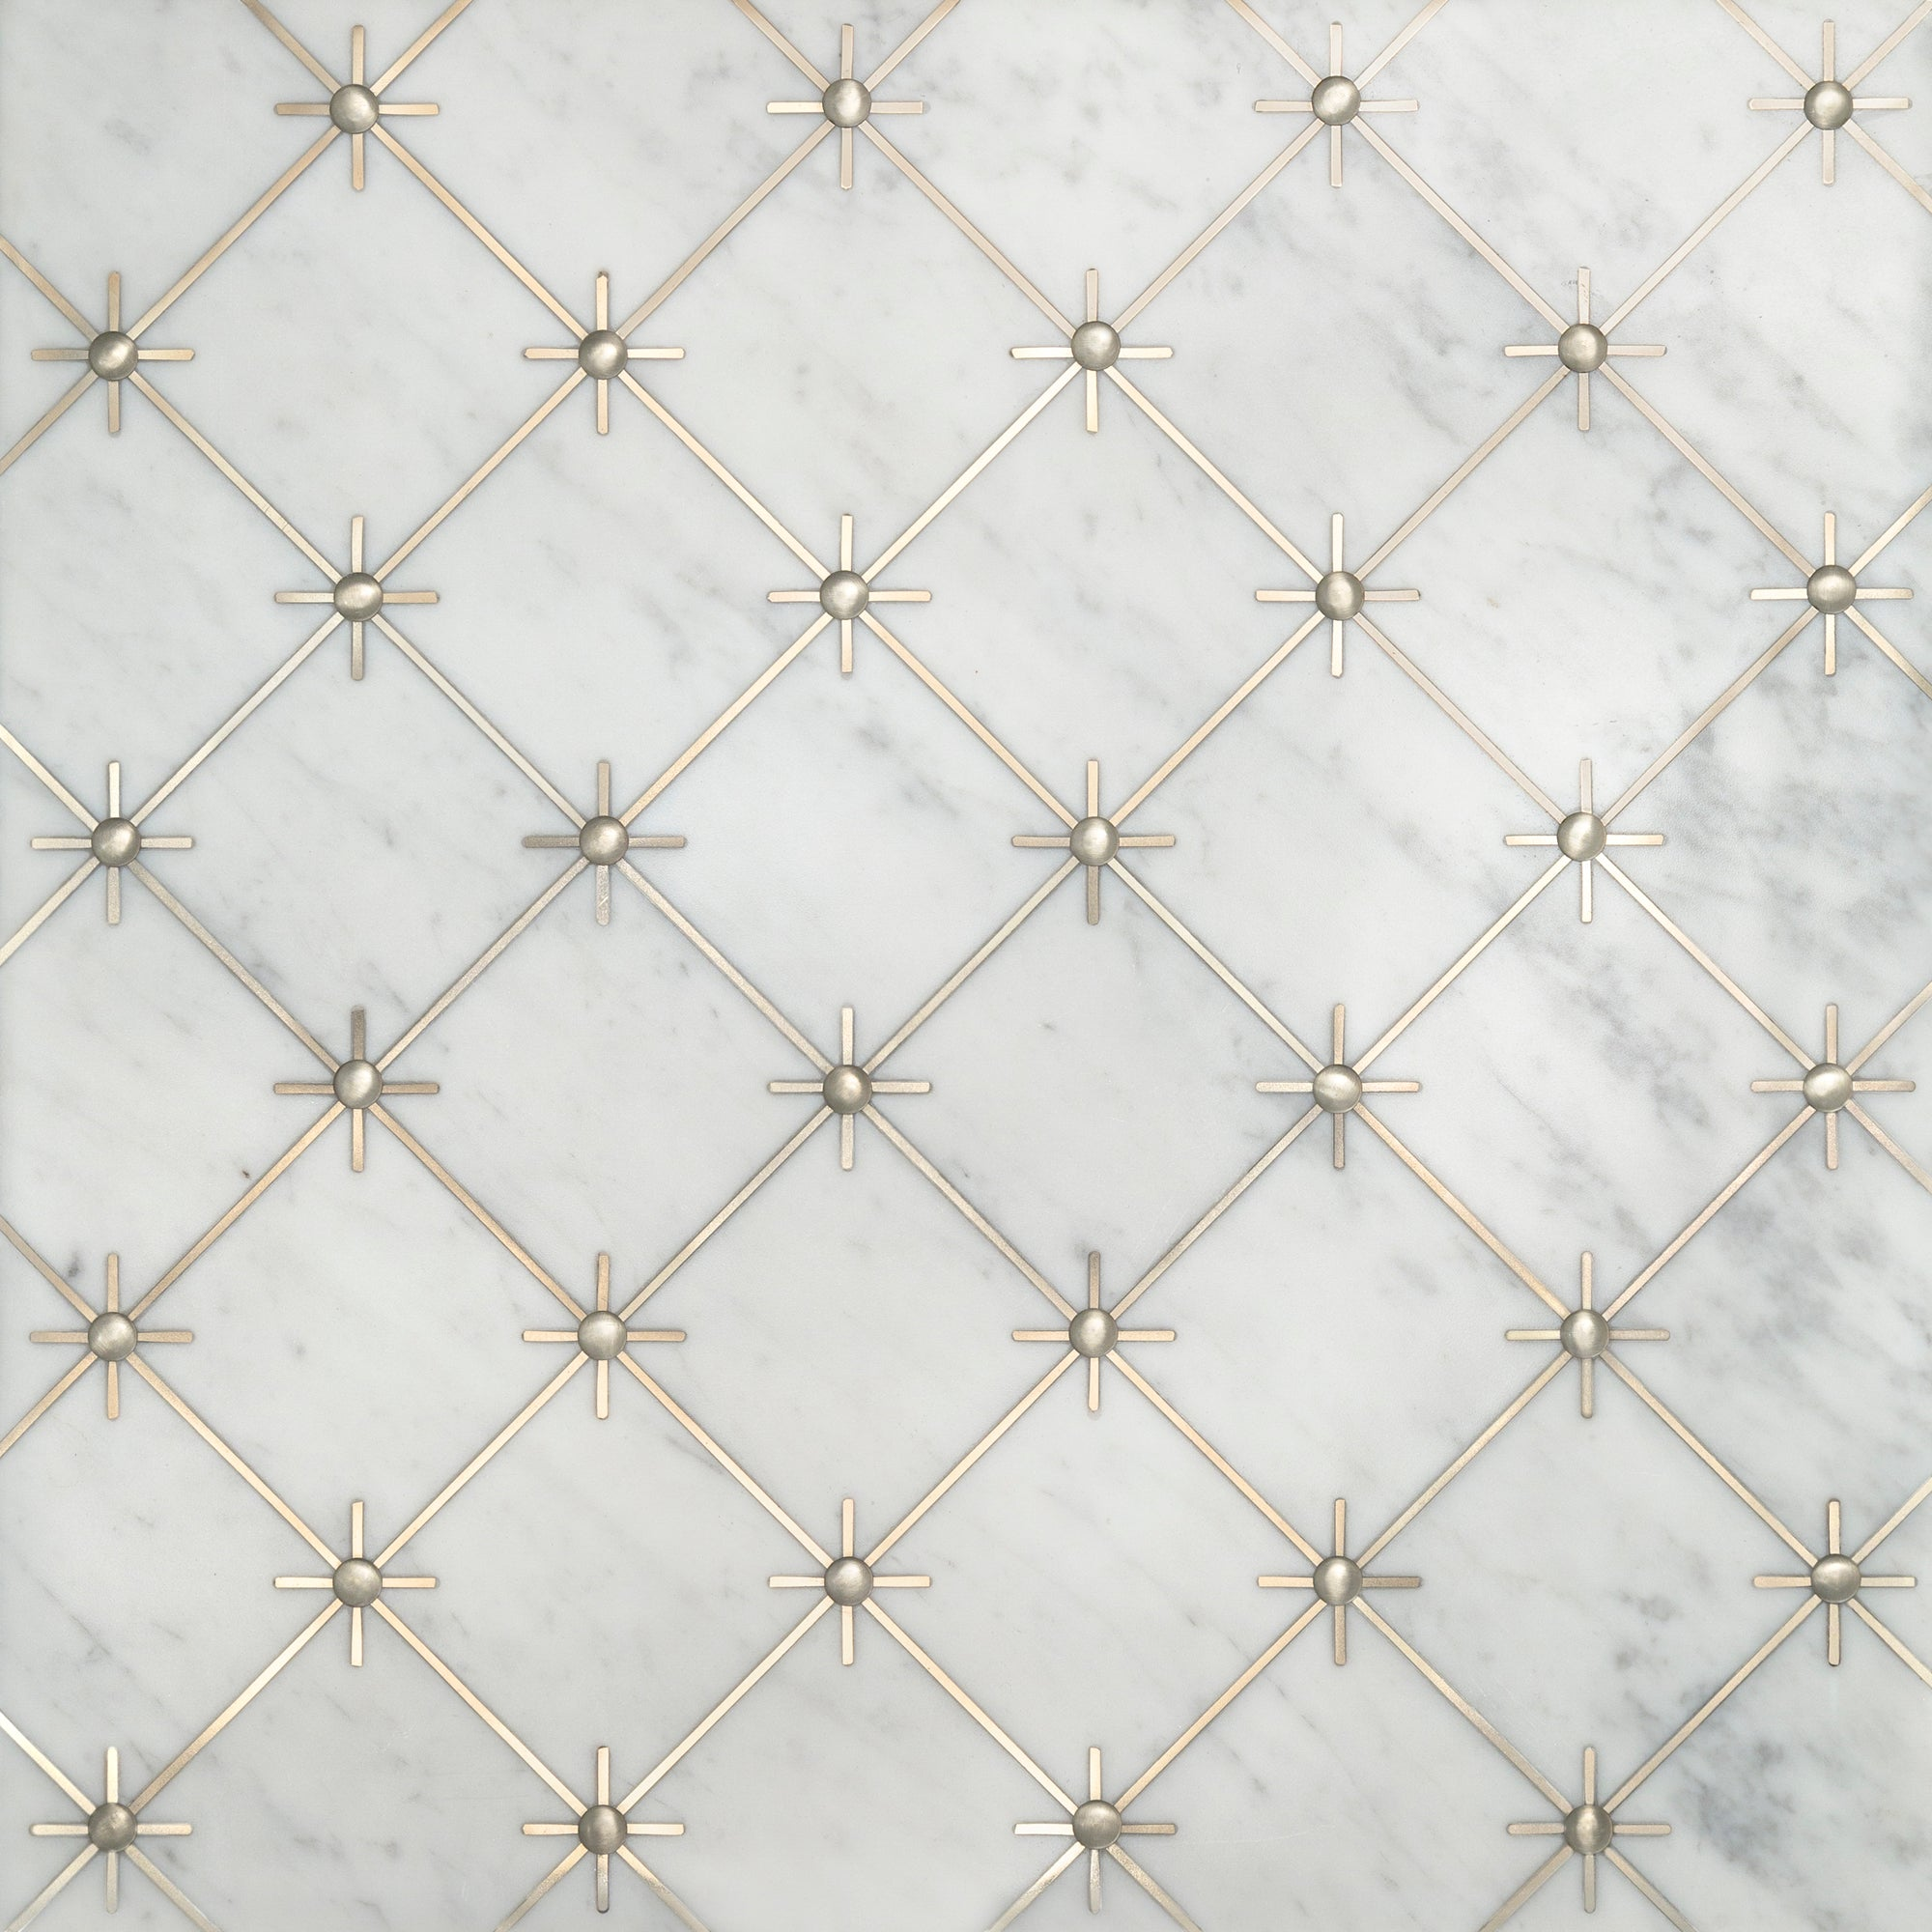 Grand Tour Castello Bianco Carrara/Silver Swatch Card  Polished Samples product photo